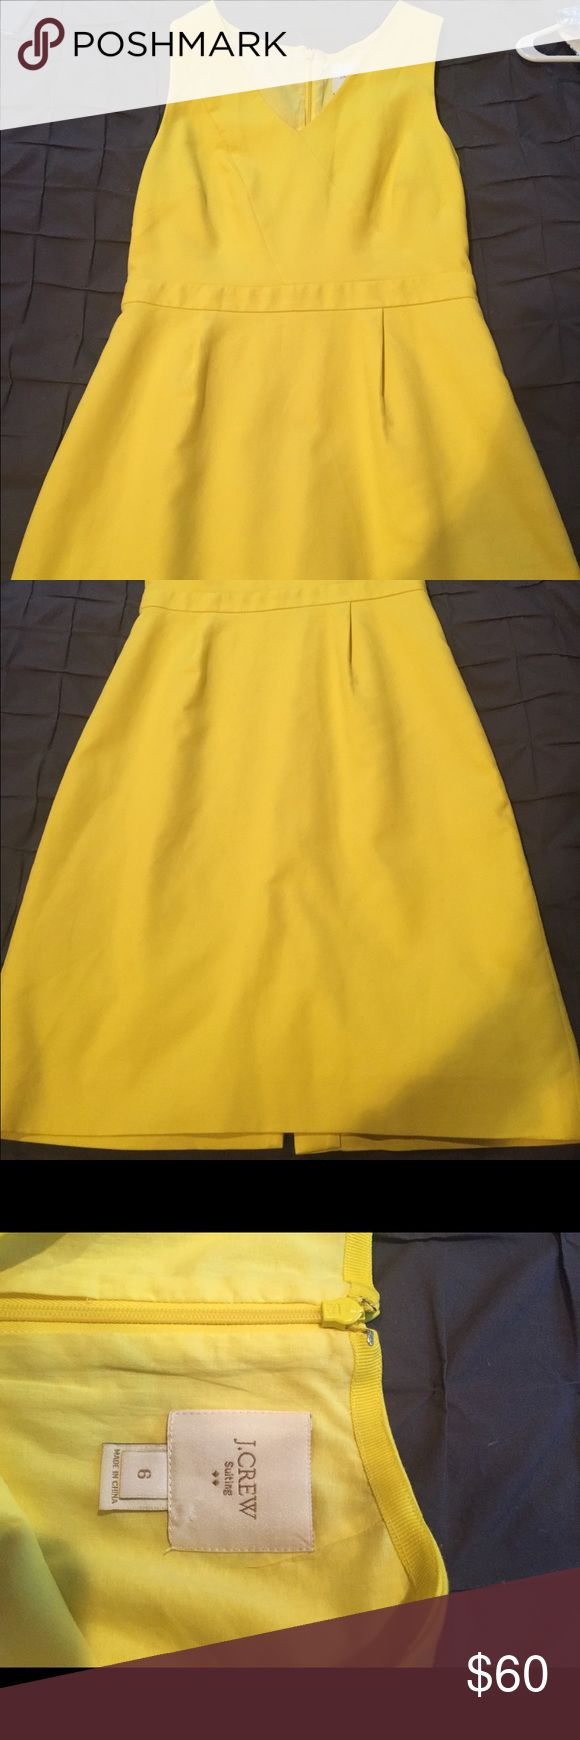 J Crew yellow dress size 6 J Crew yellow suit dress, cotton, fully lined, size 6 J. Crew Dresses